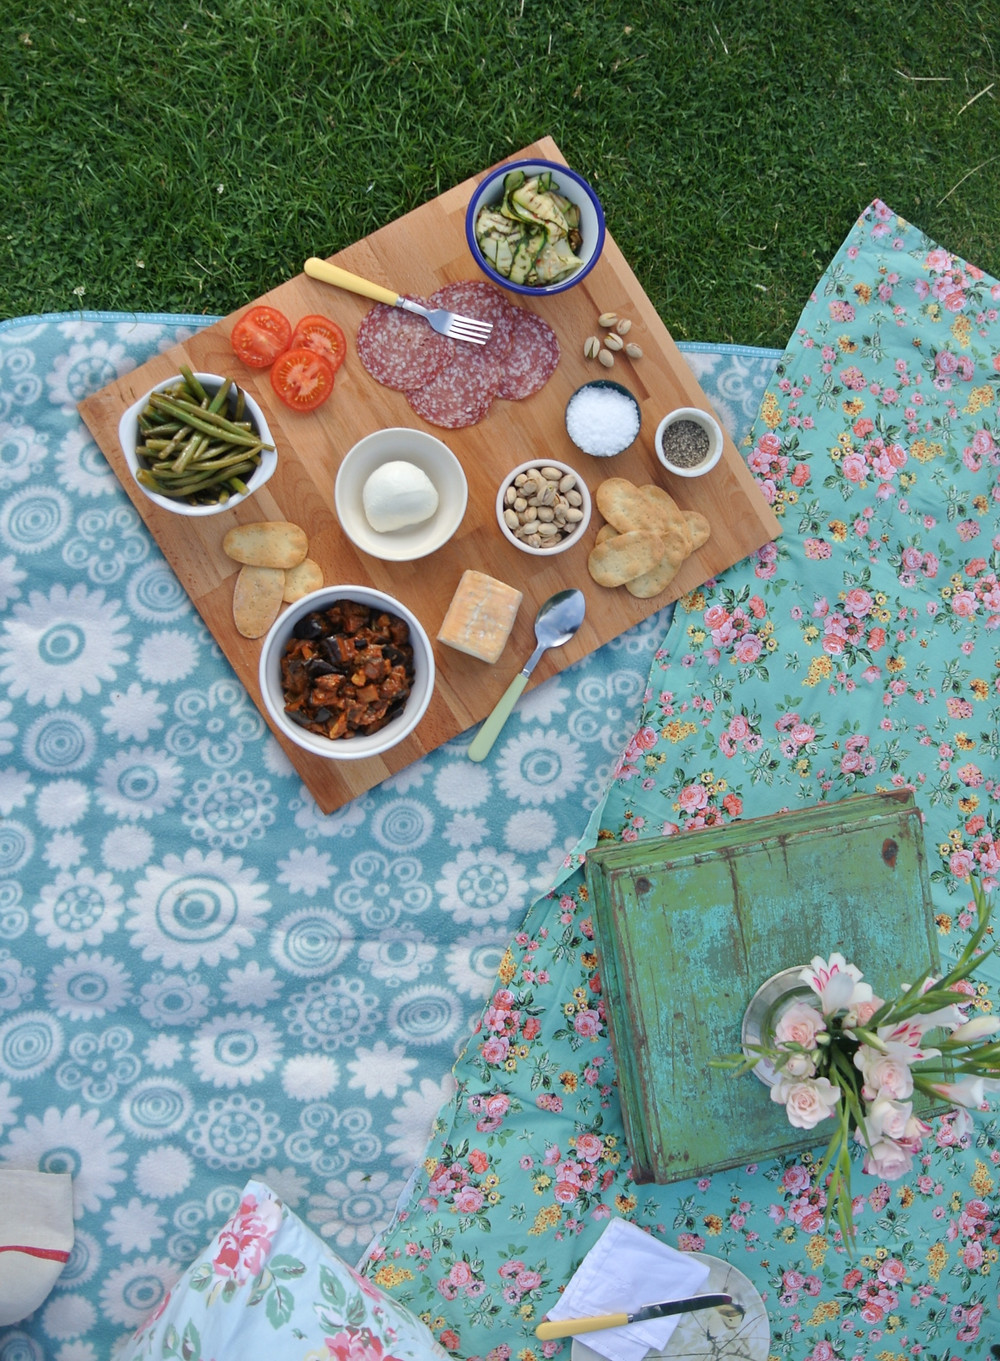 Pretty Picnic - Sky Meadow Bakery blog